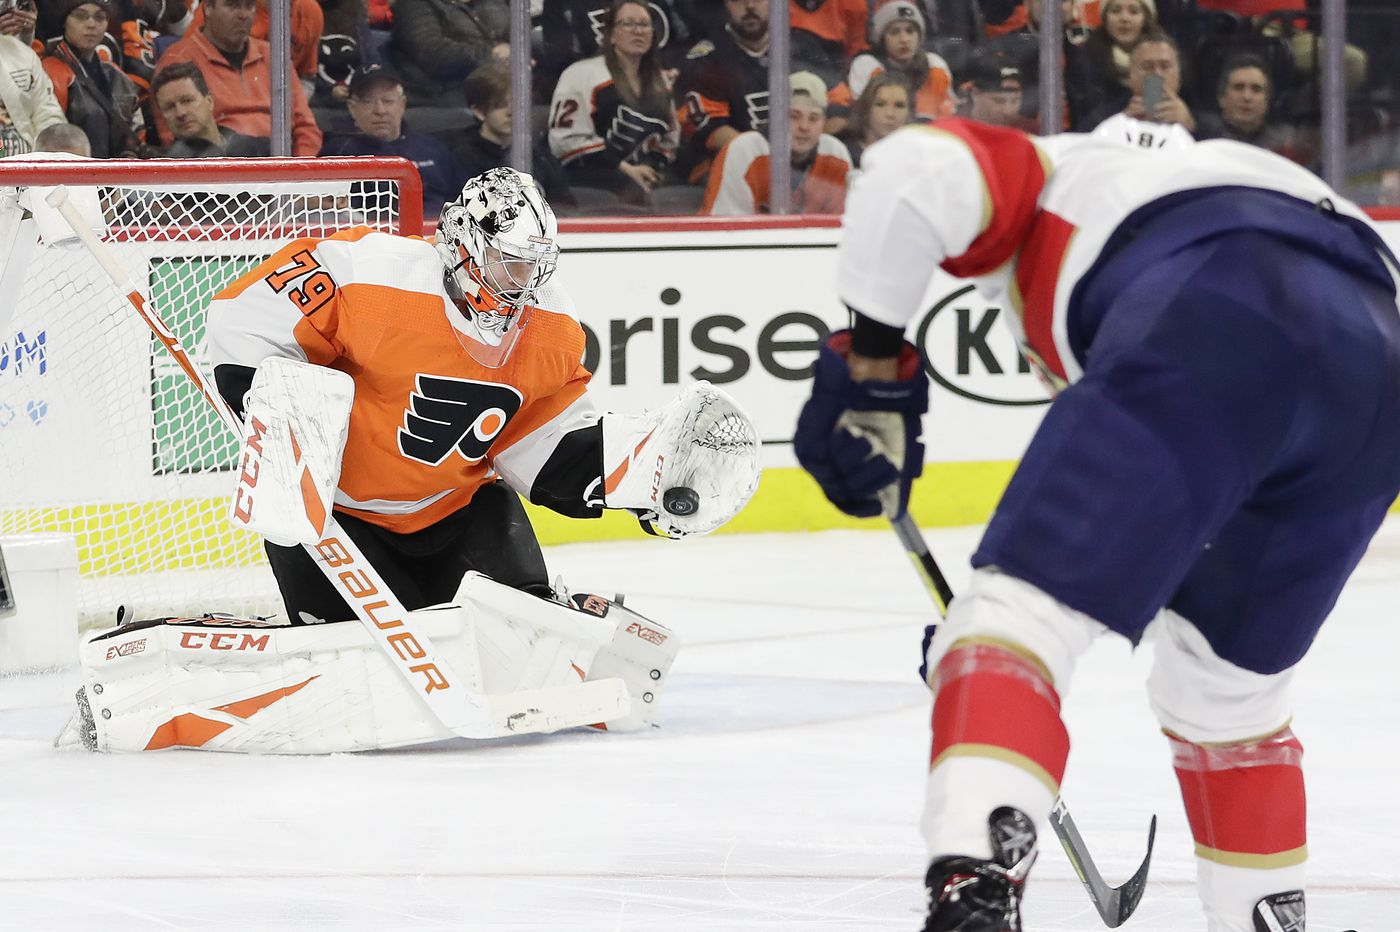 At 22, the Flyers' Carter Hart is primed to become one of the NHL's elite goaltenders